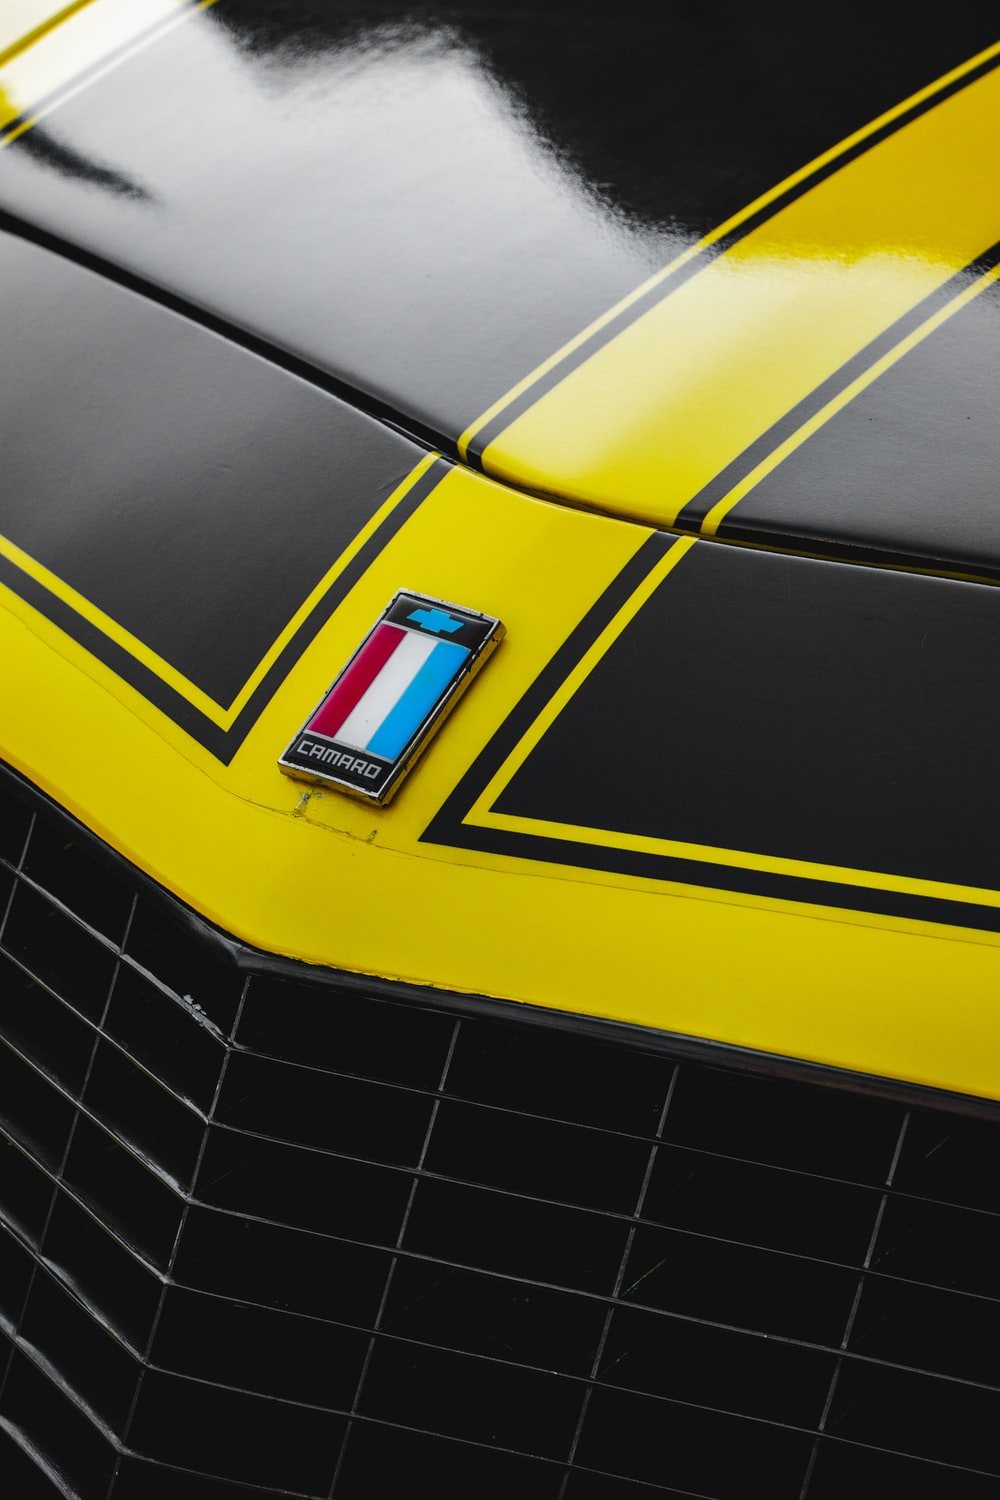 yellow and black car in close up photography